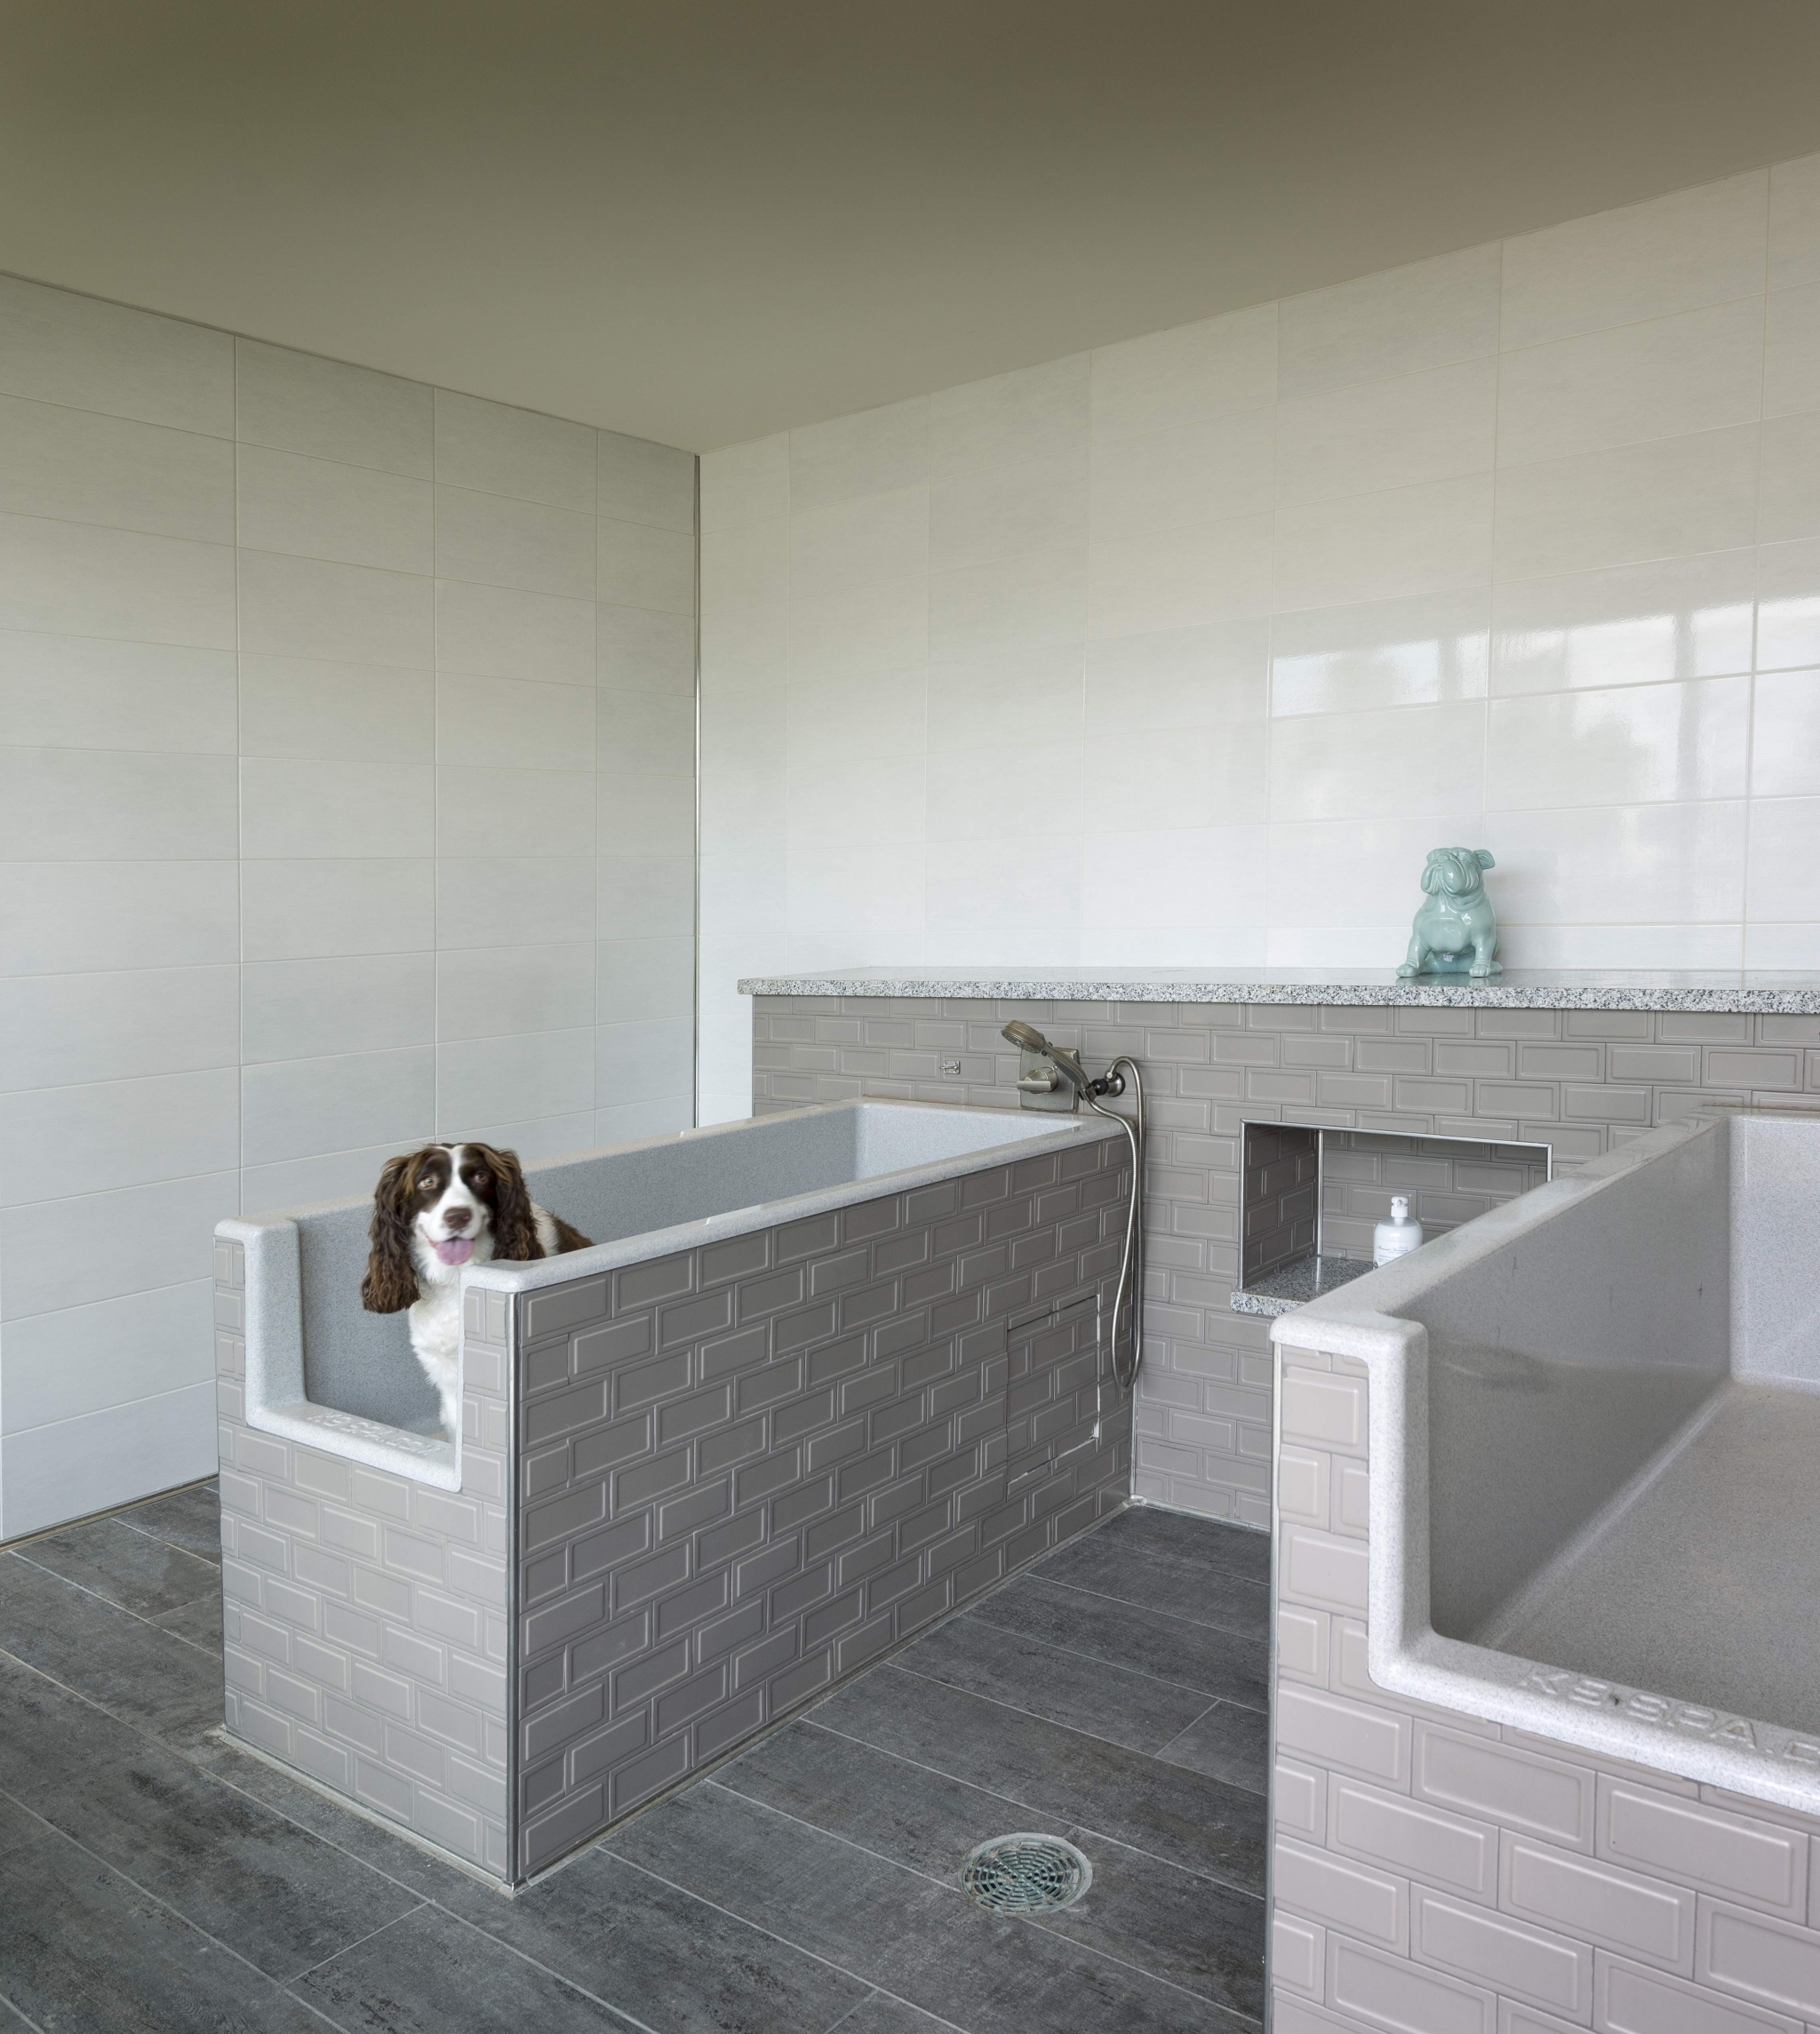 Image of Pet-friendly living including pet washing station for Viridian Design District